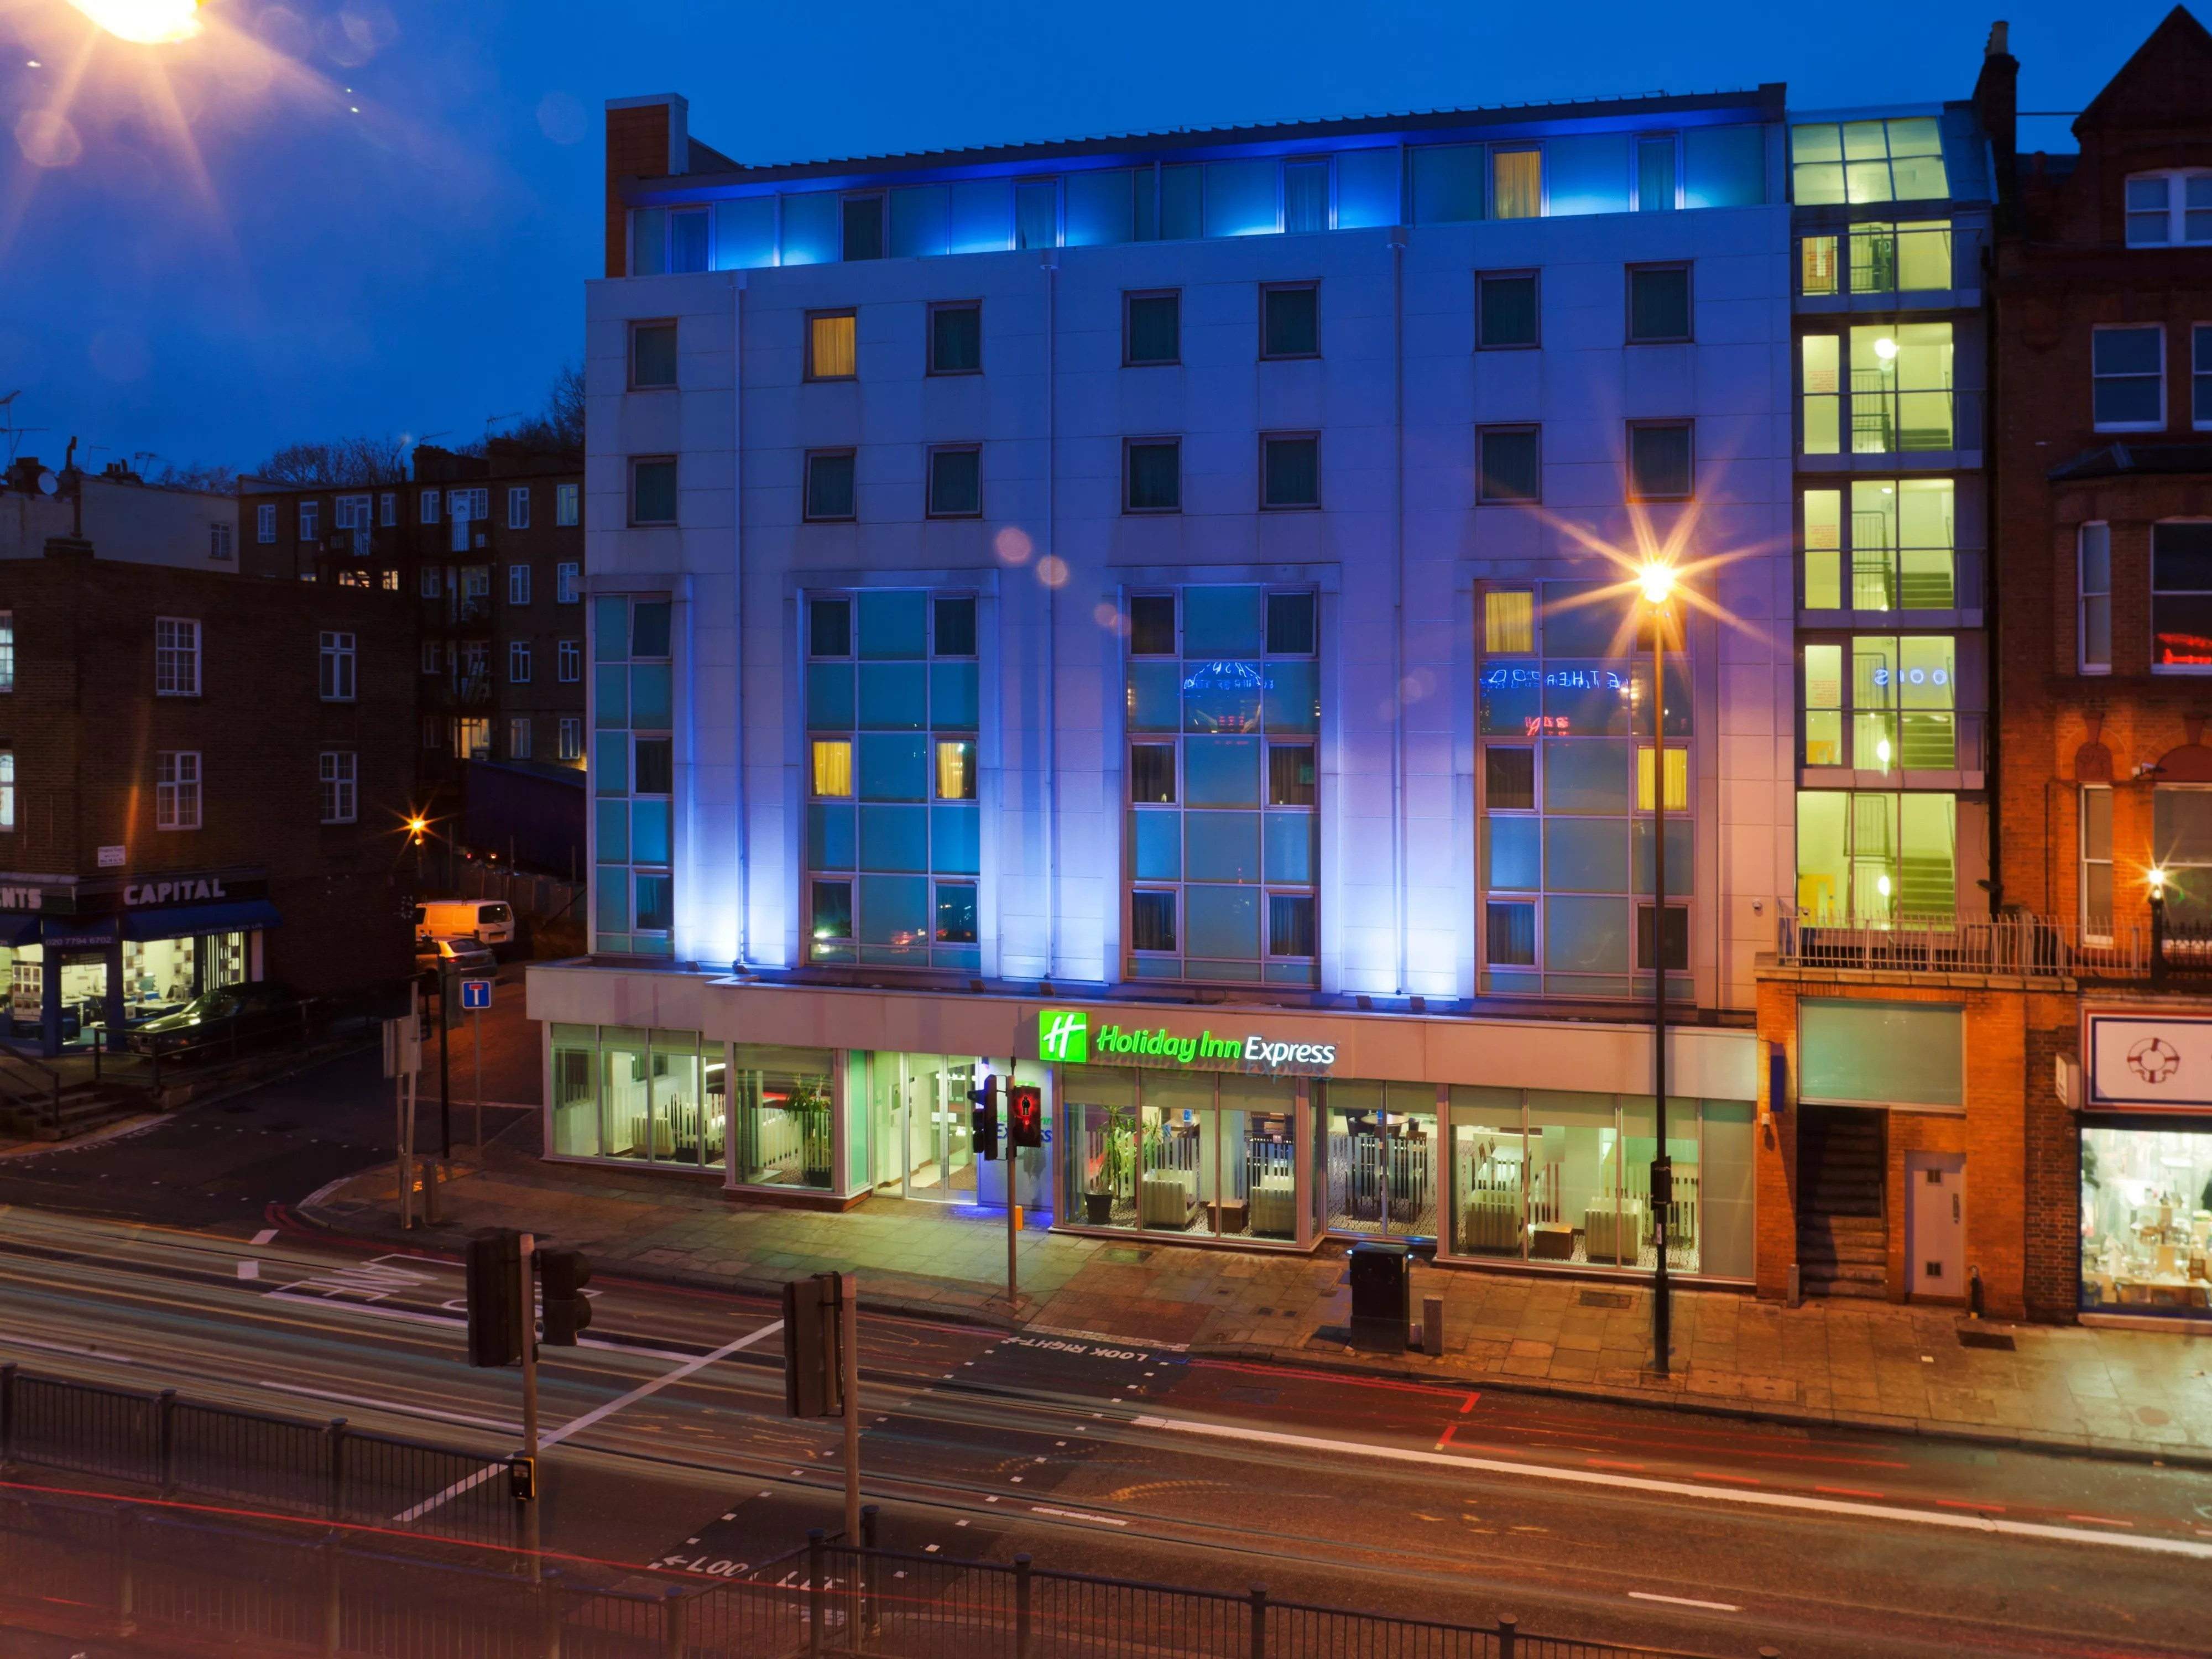 Holiday Inn Express Hotel London Swiss Cottage